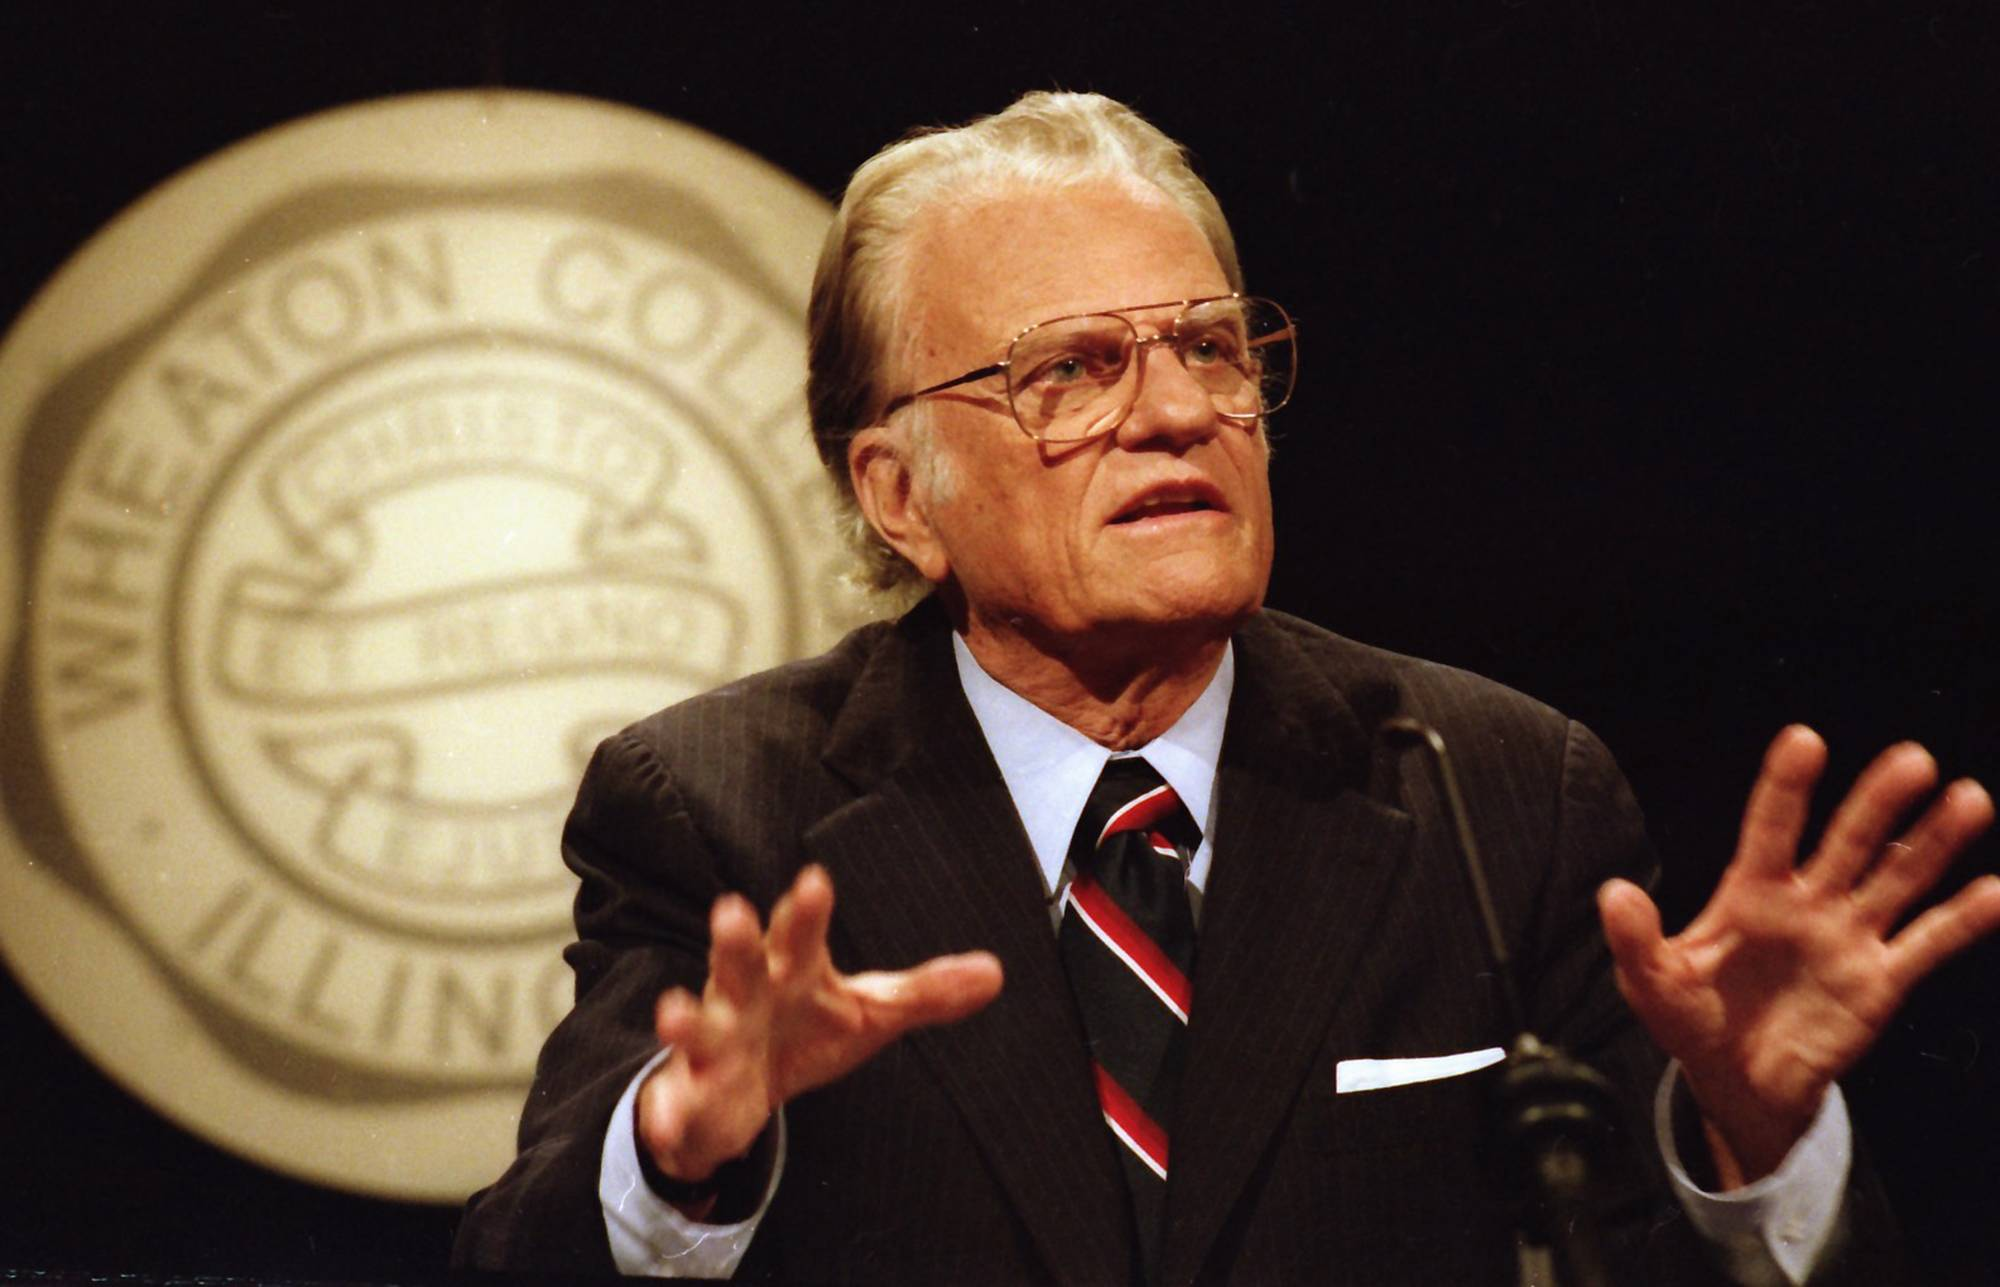 Rev. Billy Graham speaking at Wheaton College on May 11, 1994.